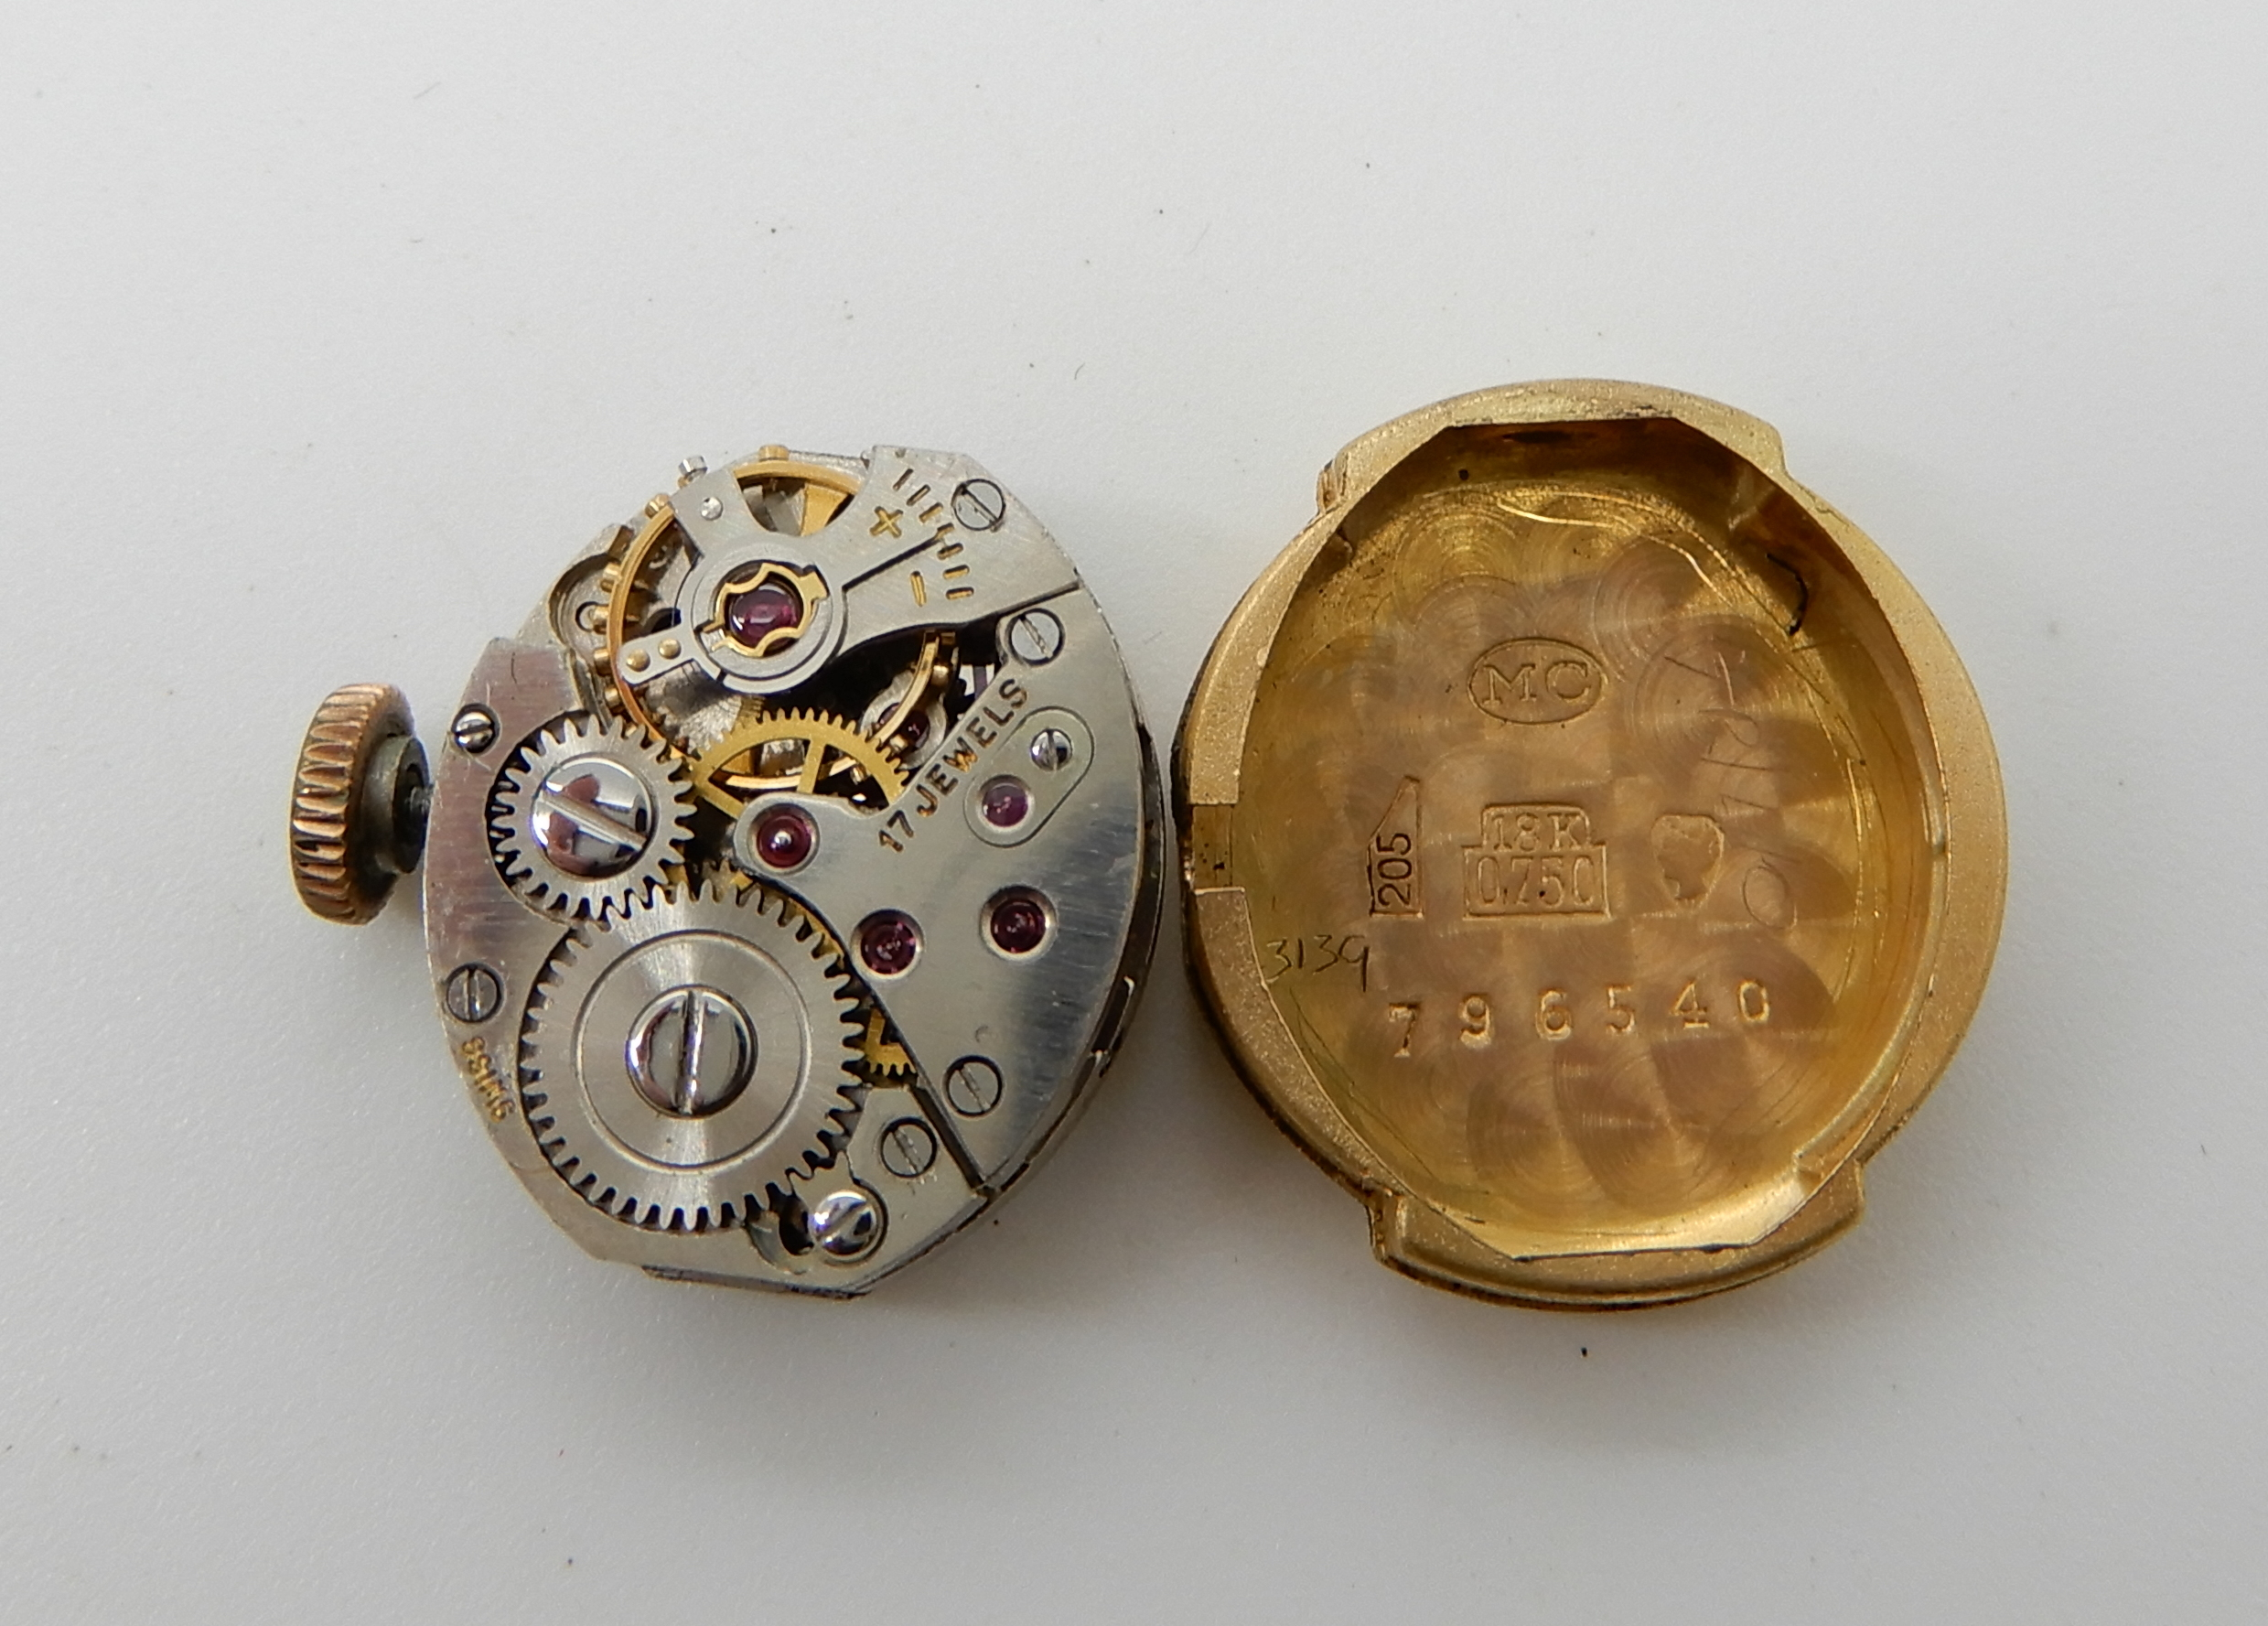 Lot 34 - An 18ct gold ladies Baume watch head, weight including mechanism 6.2gms Condition Report: